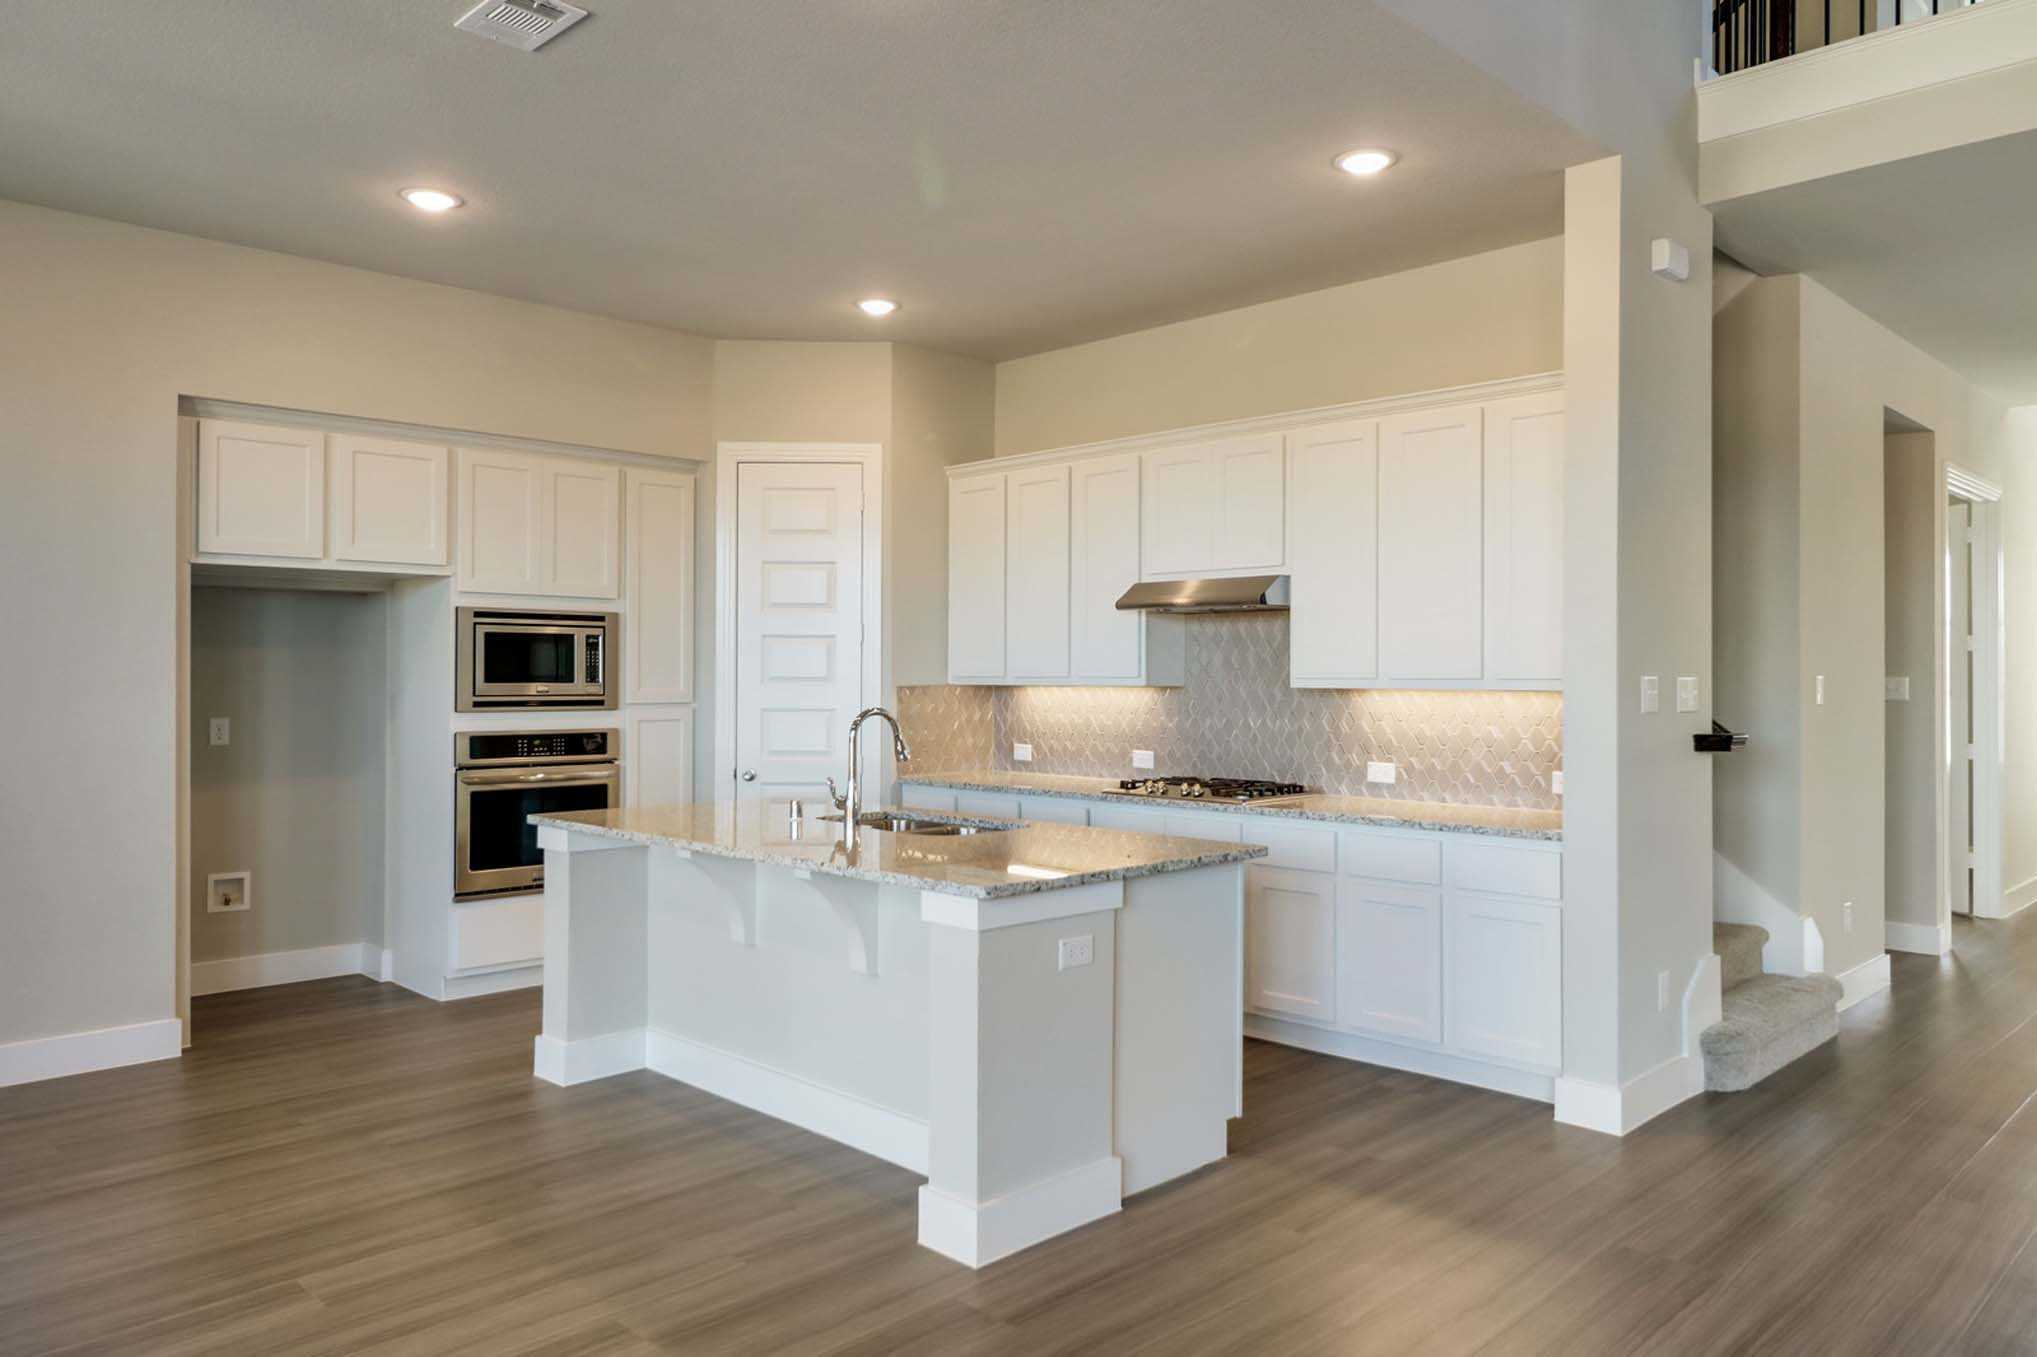 Kitchen featured in the Plan Wimbledon By Highland Homes in Dallas, TX